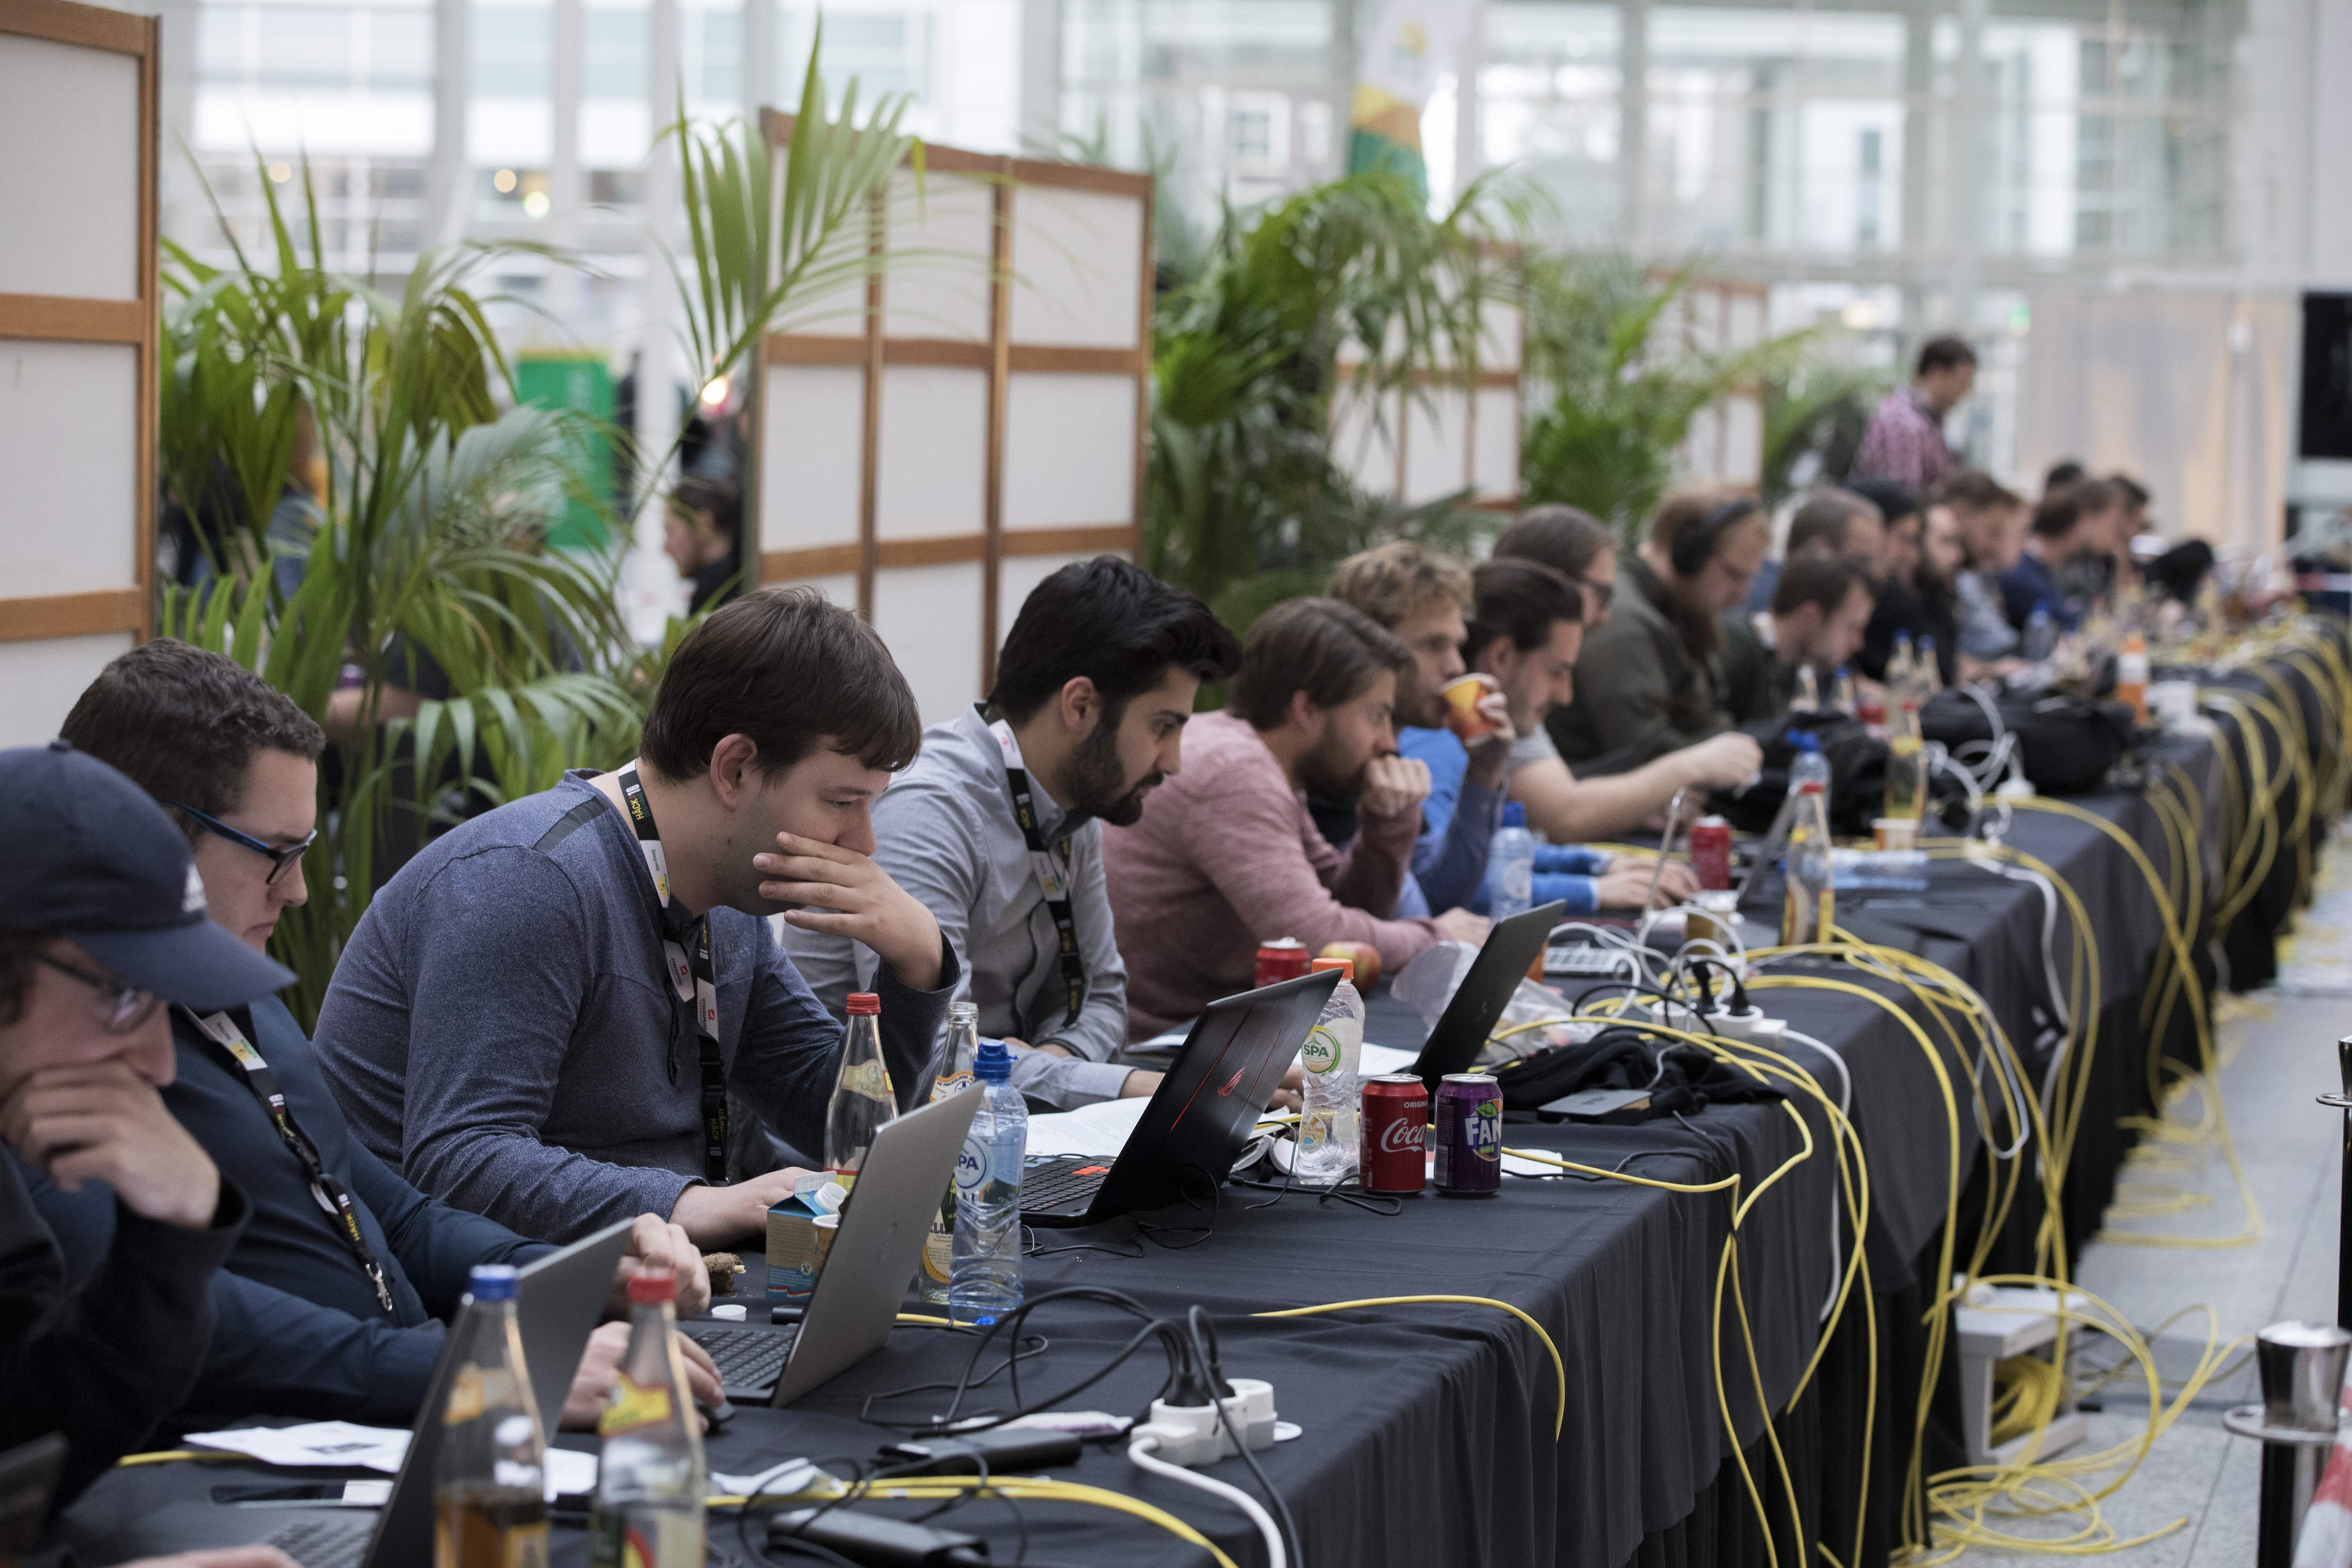 THE MUNICIPALITY OF THE HAGUE PASSED DIGITAL TEST BY 45 HACKERS